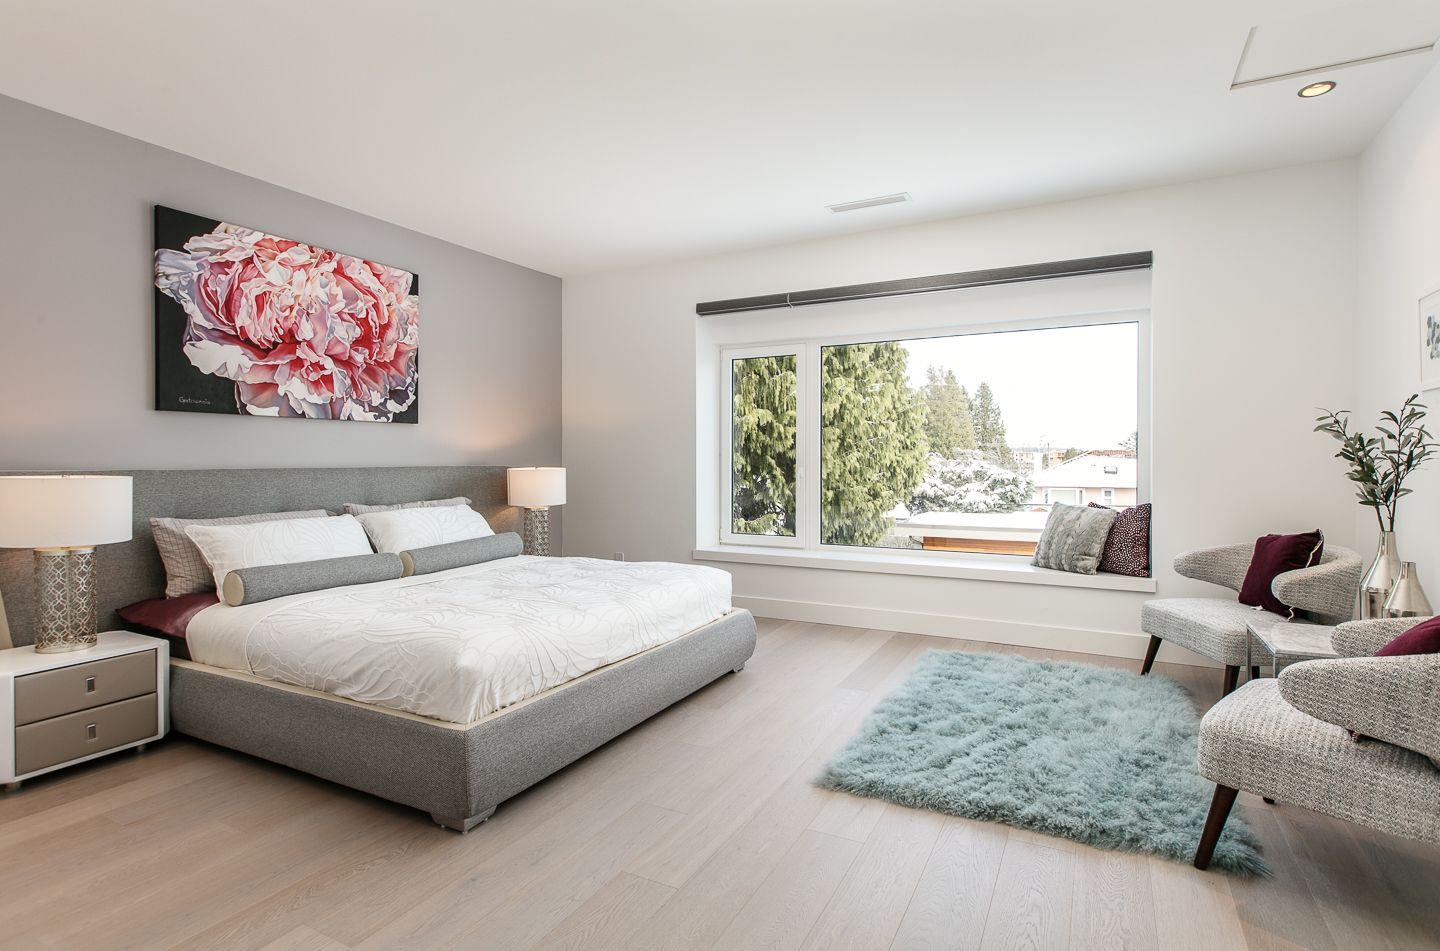 Photo 20: Photos: 6978 LAUREL ST in VANCOUVER: South Cambie House for sale (Vancouver West)